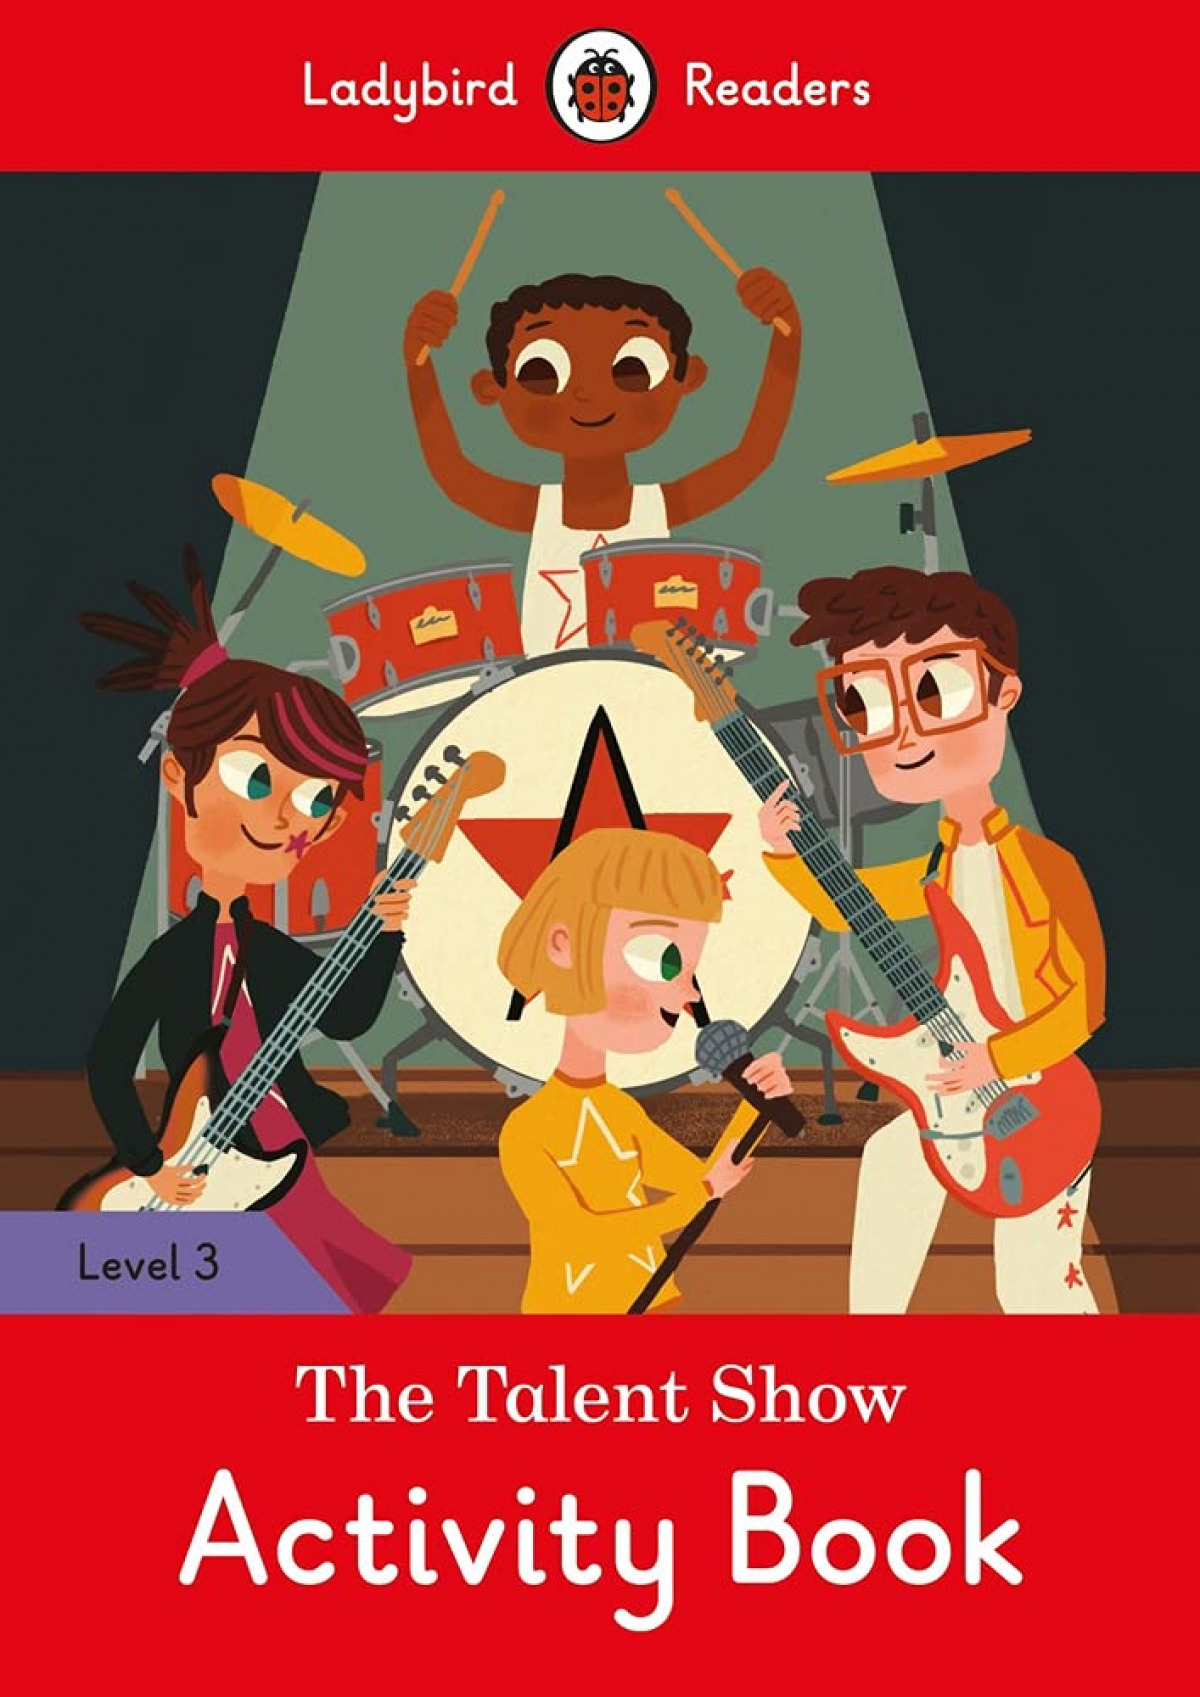 THE TALENT SHOW. ACTIVITY BOOK